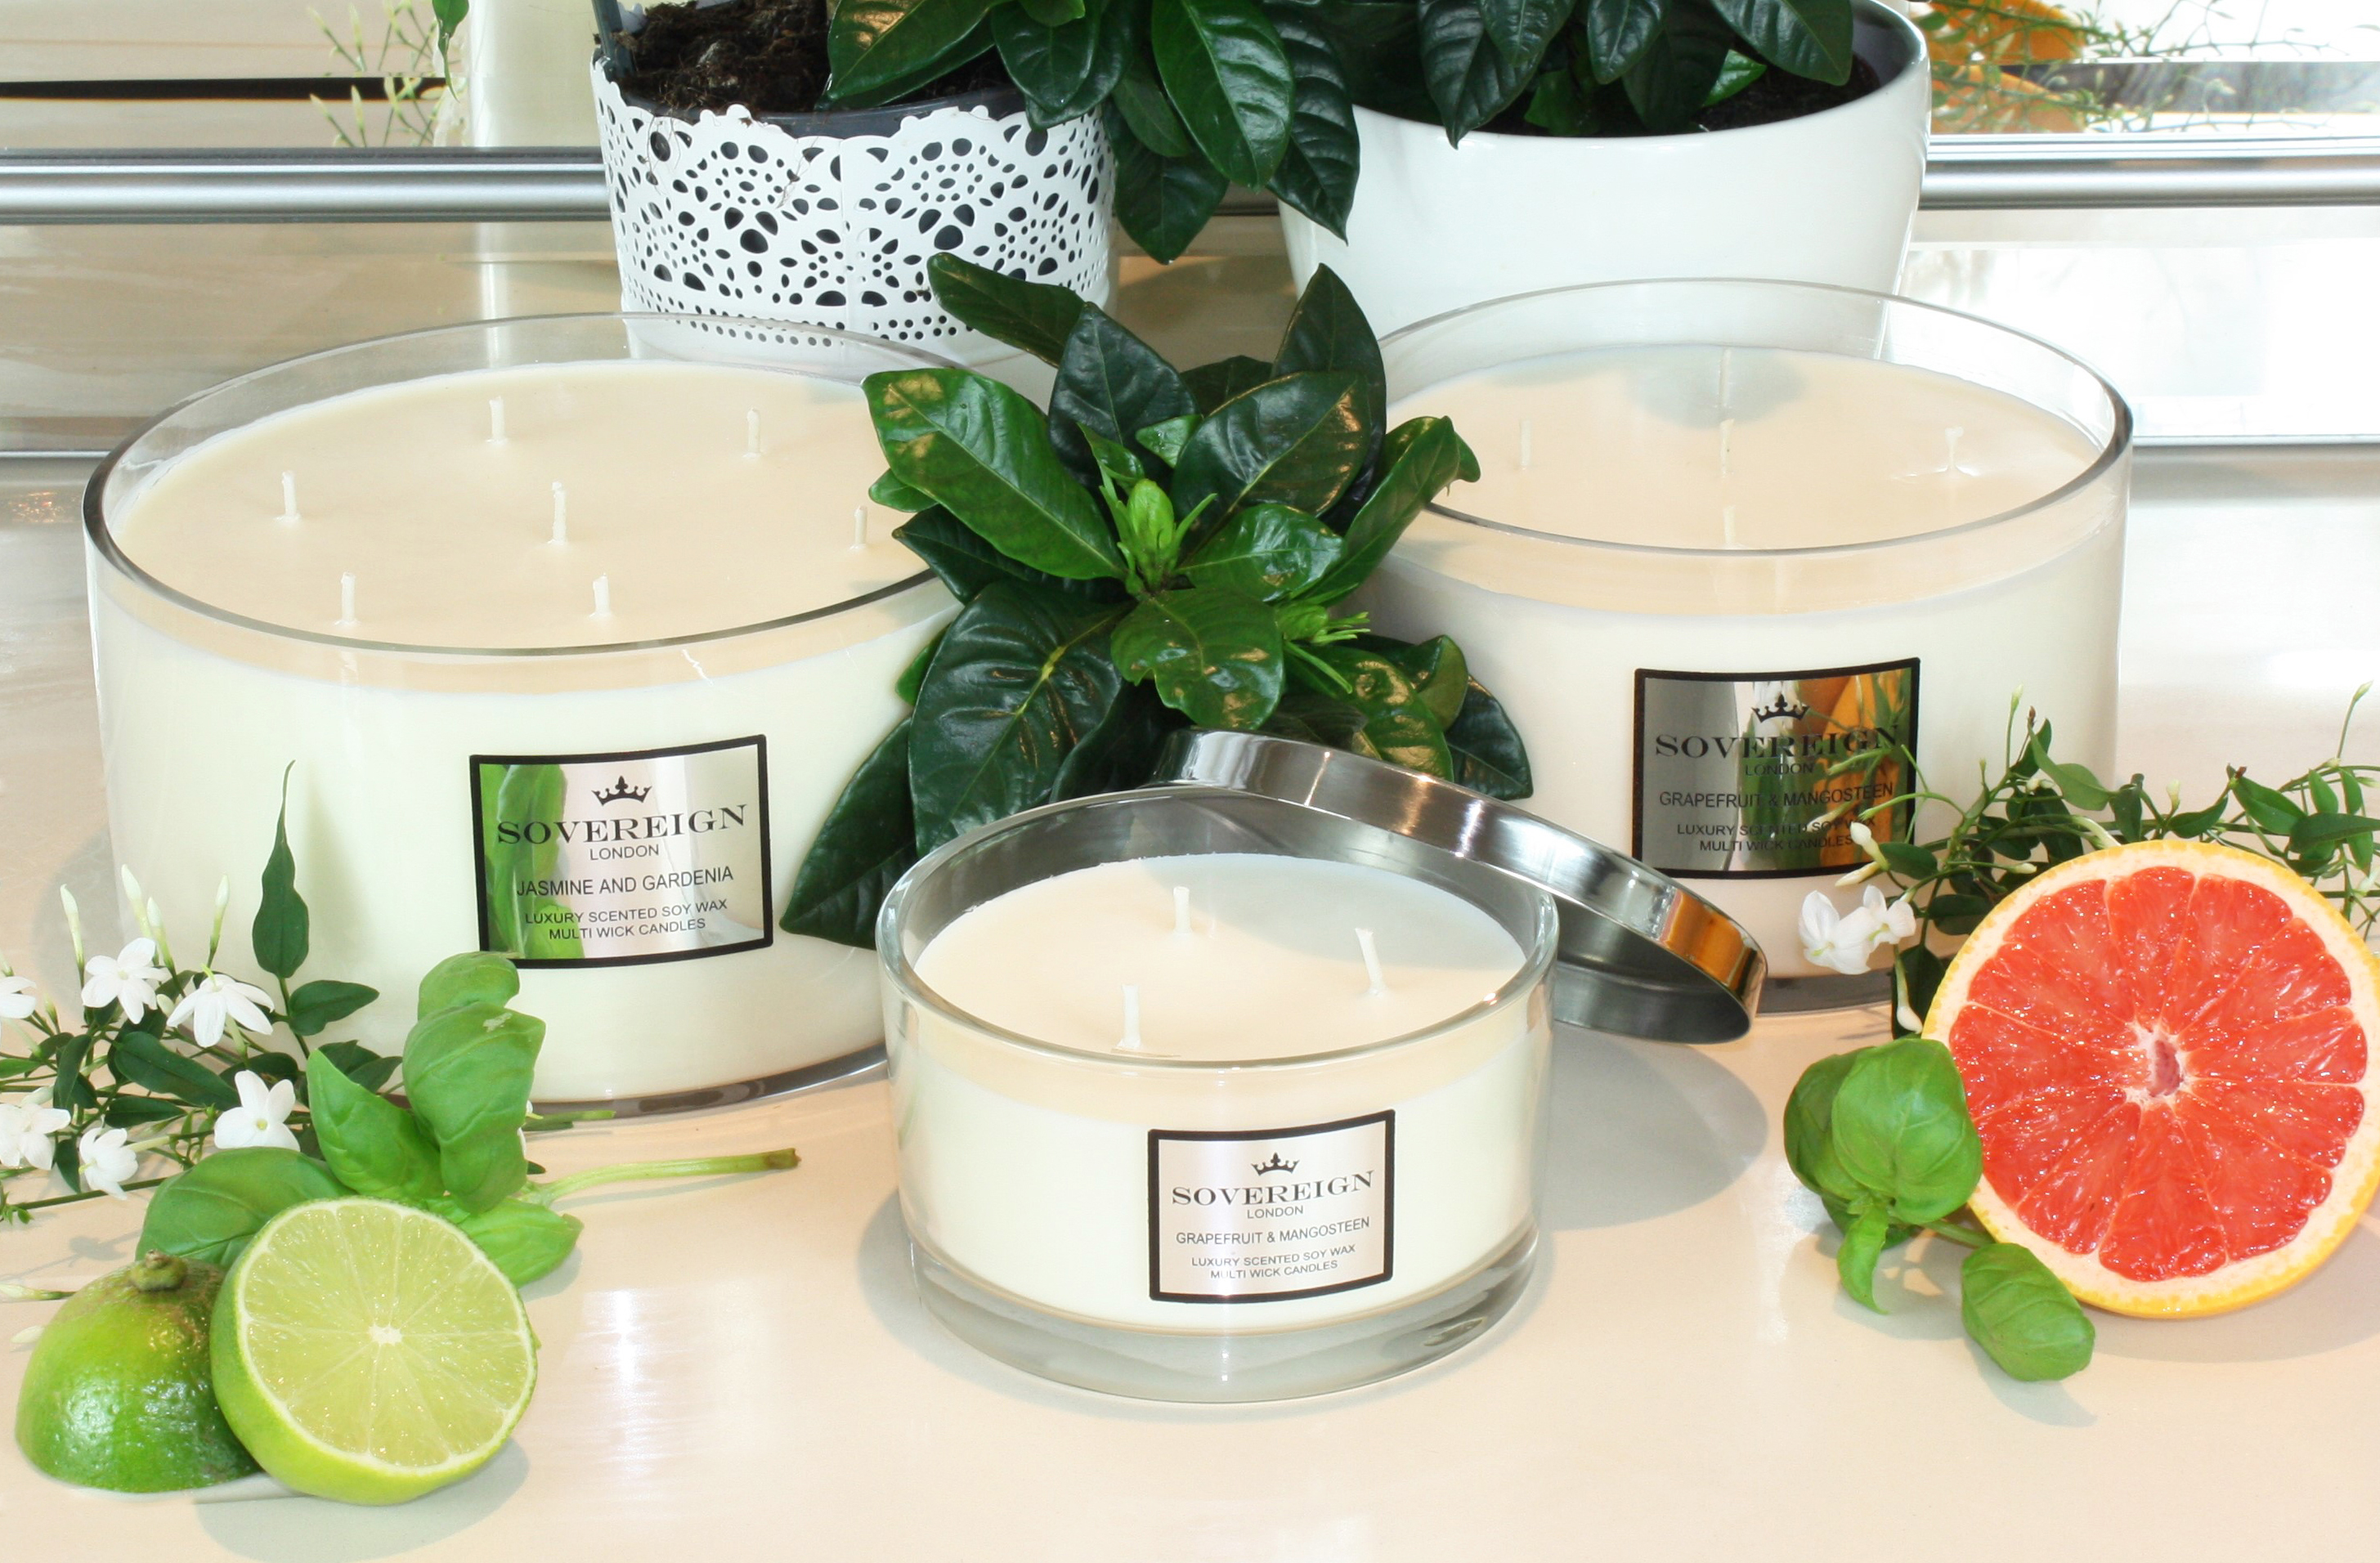 Sovereign vegan candles